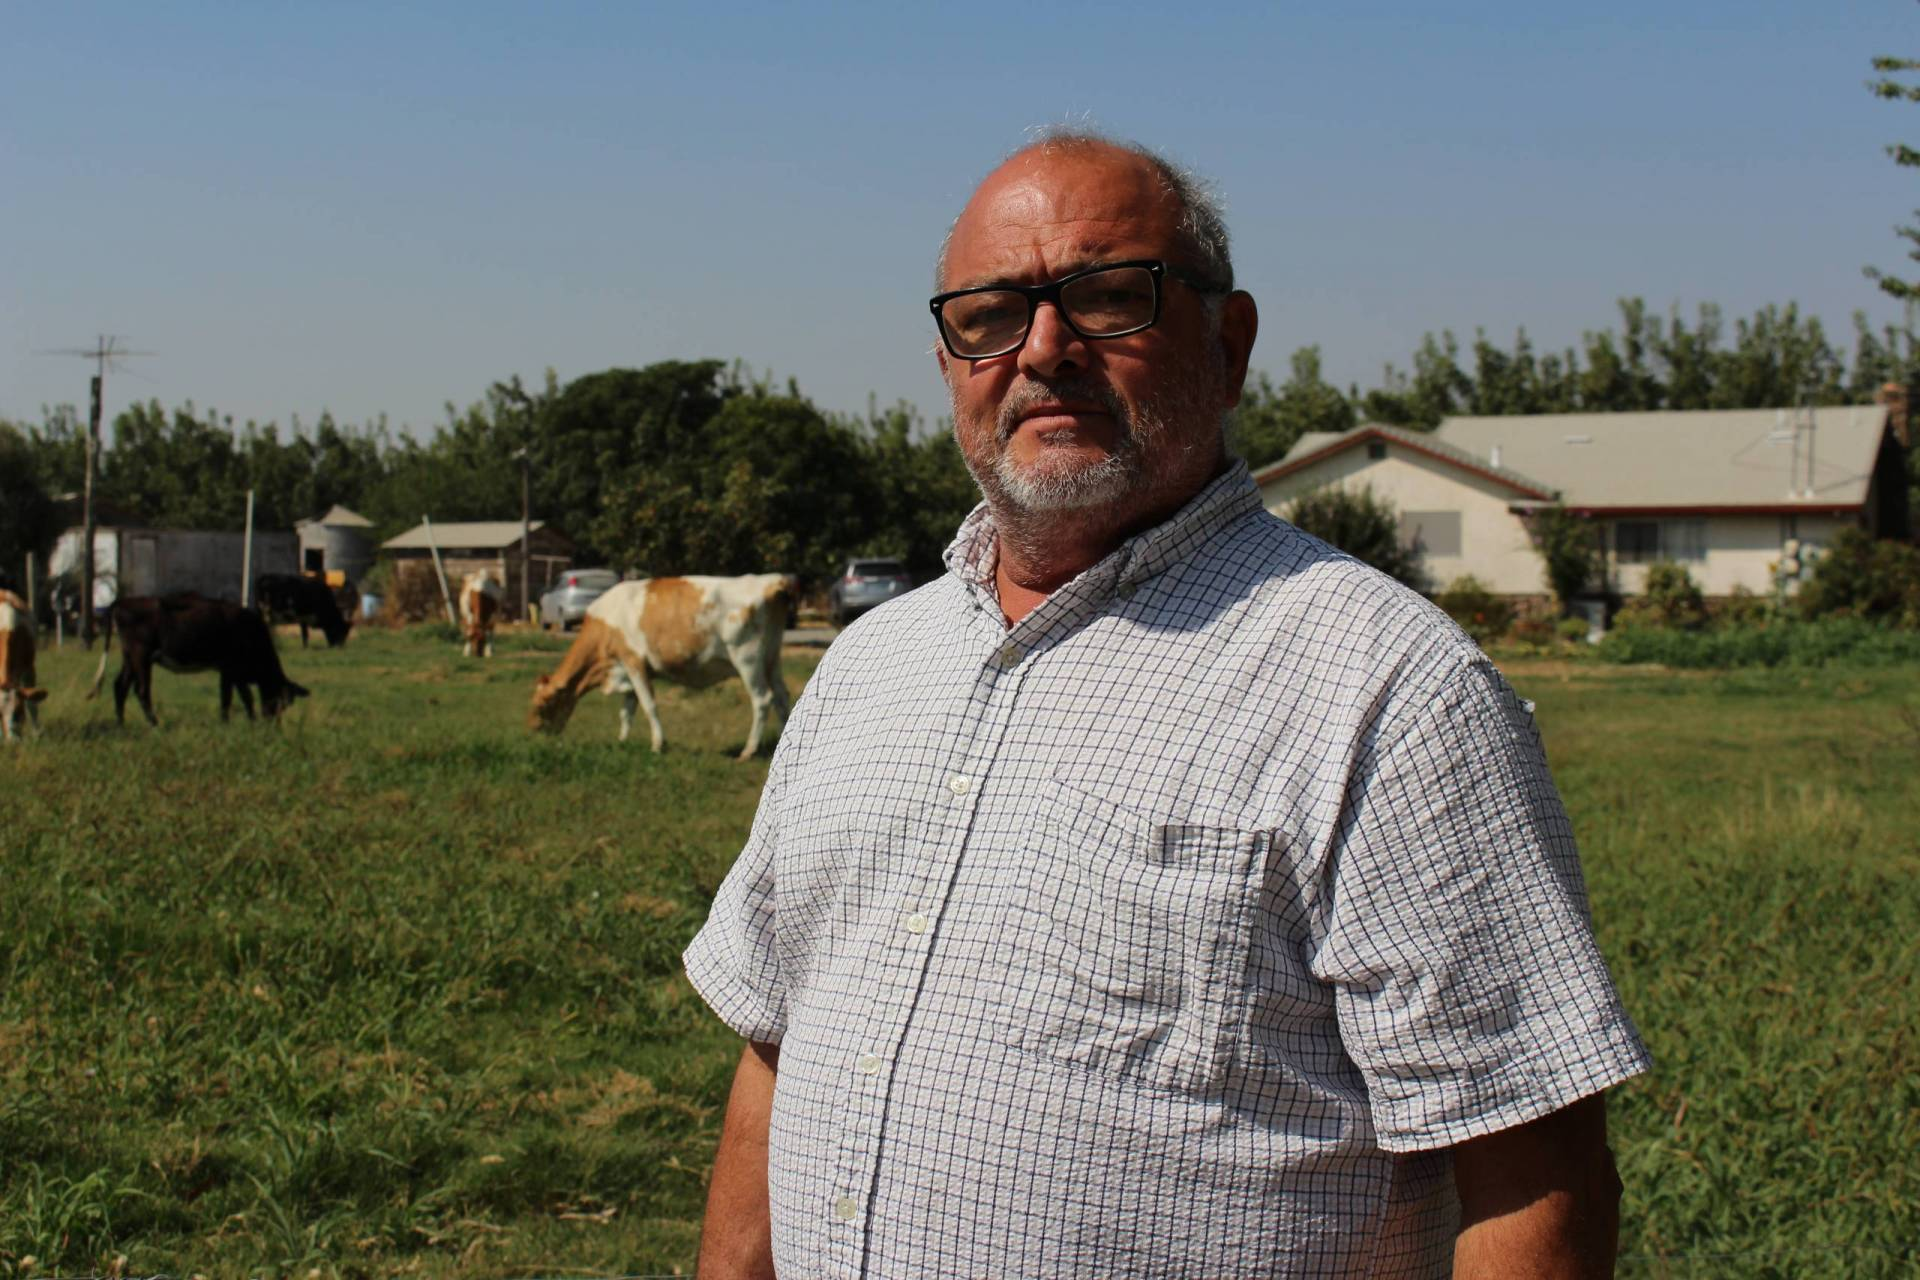 A man stands on a field with cows.